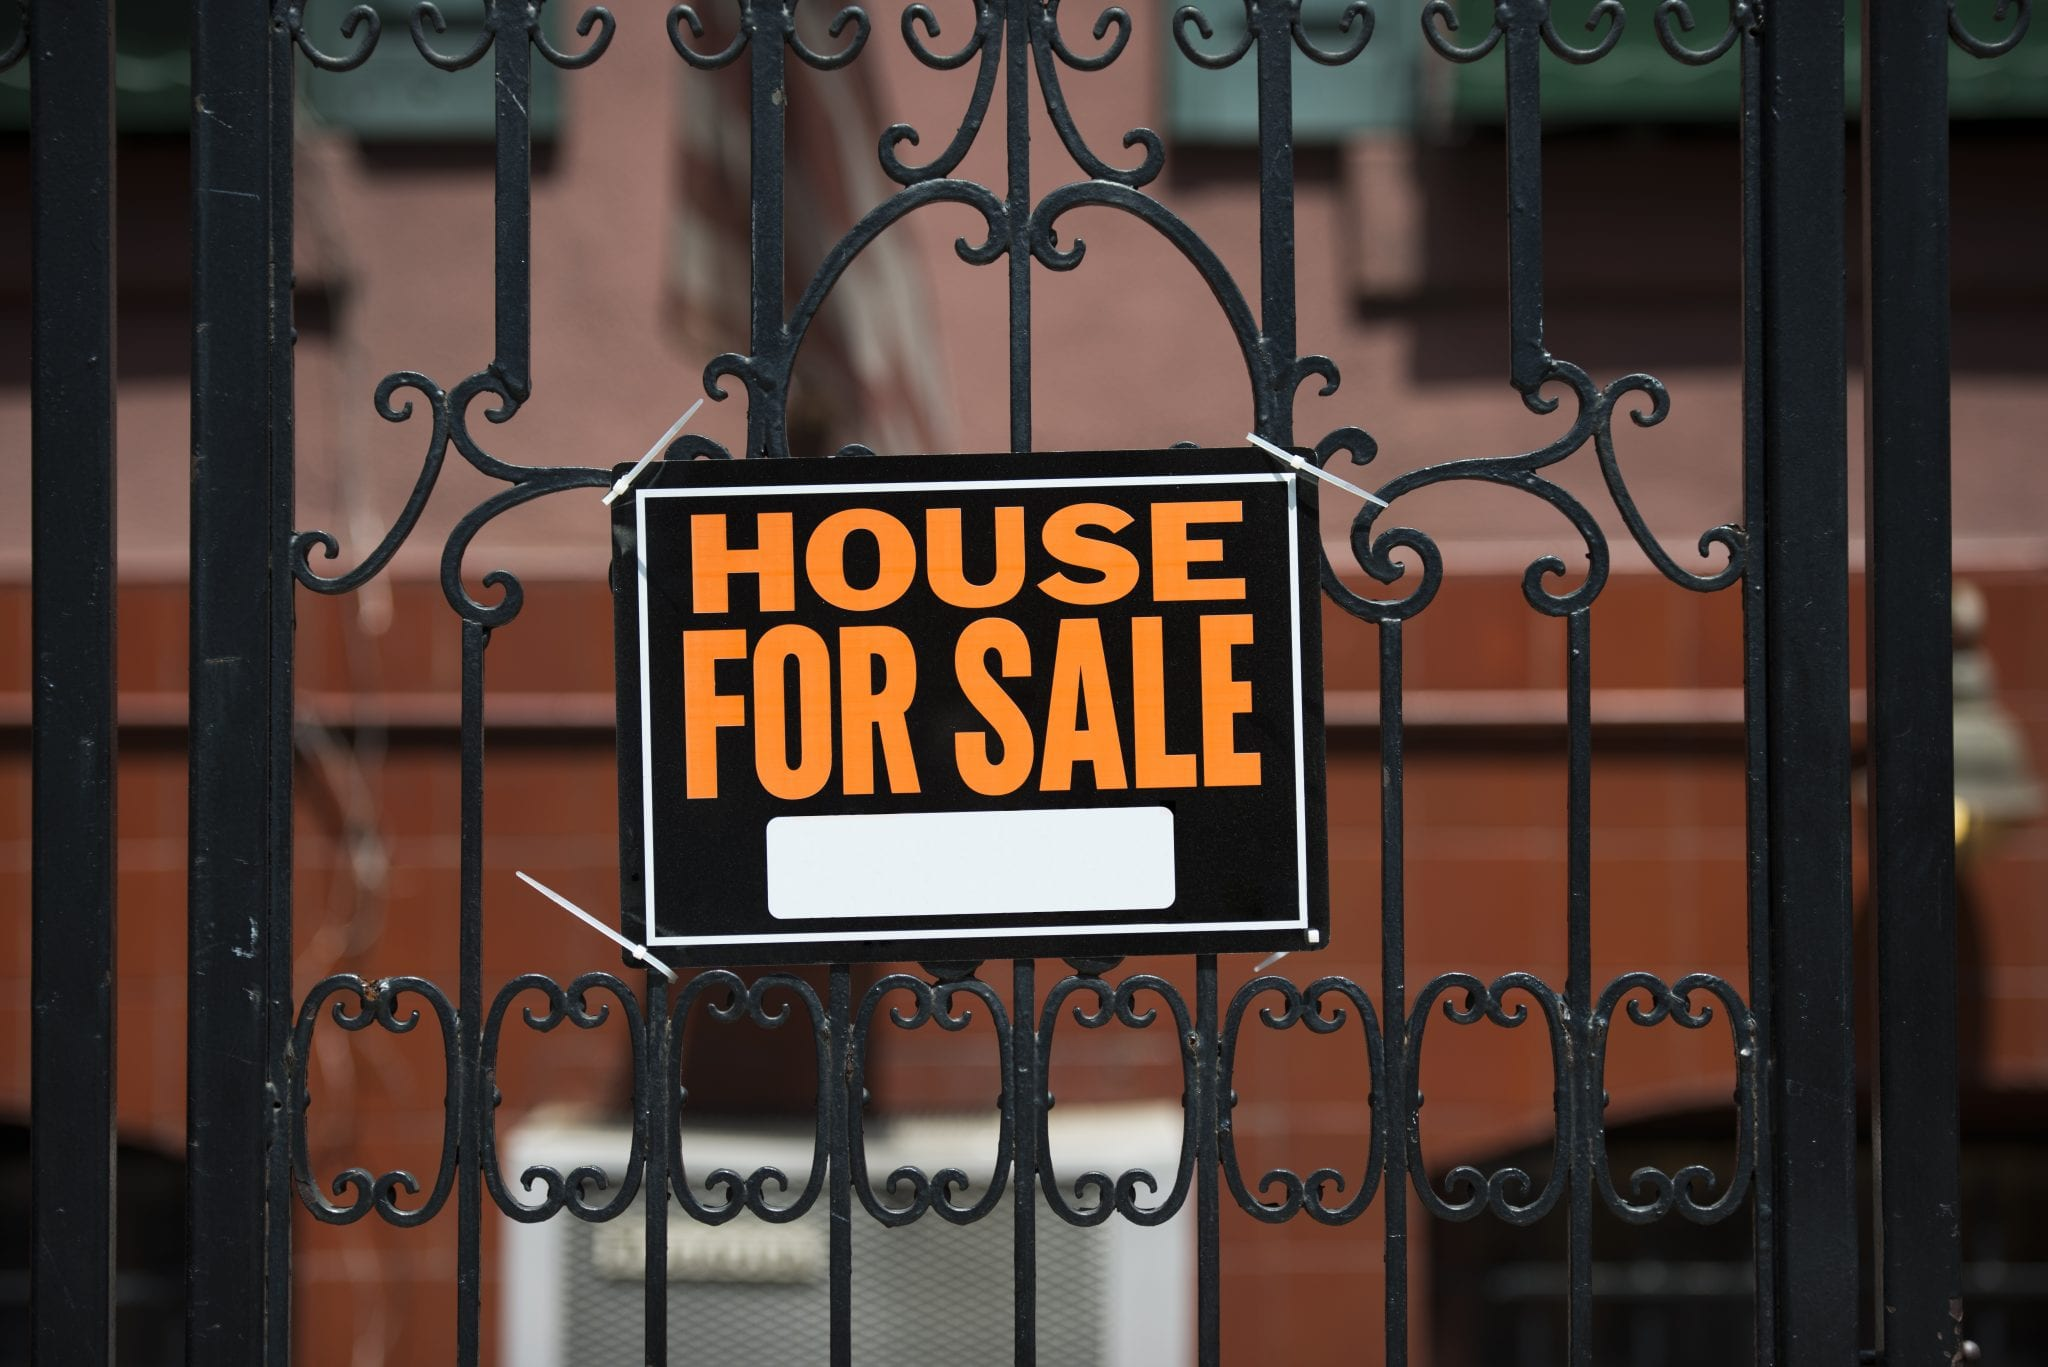 House for sale sign. Here's how to sell your house when you aren't getting any offers.